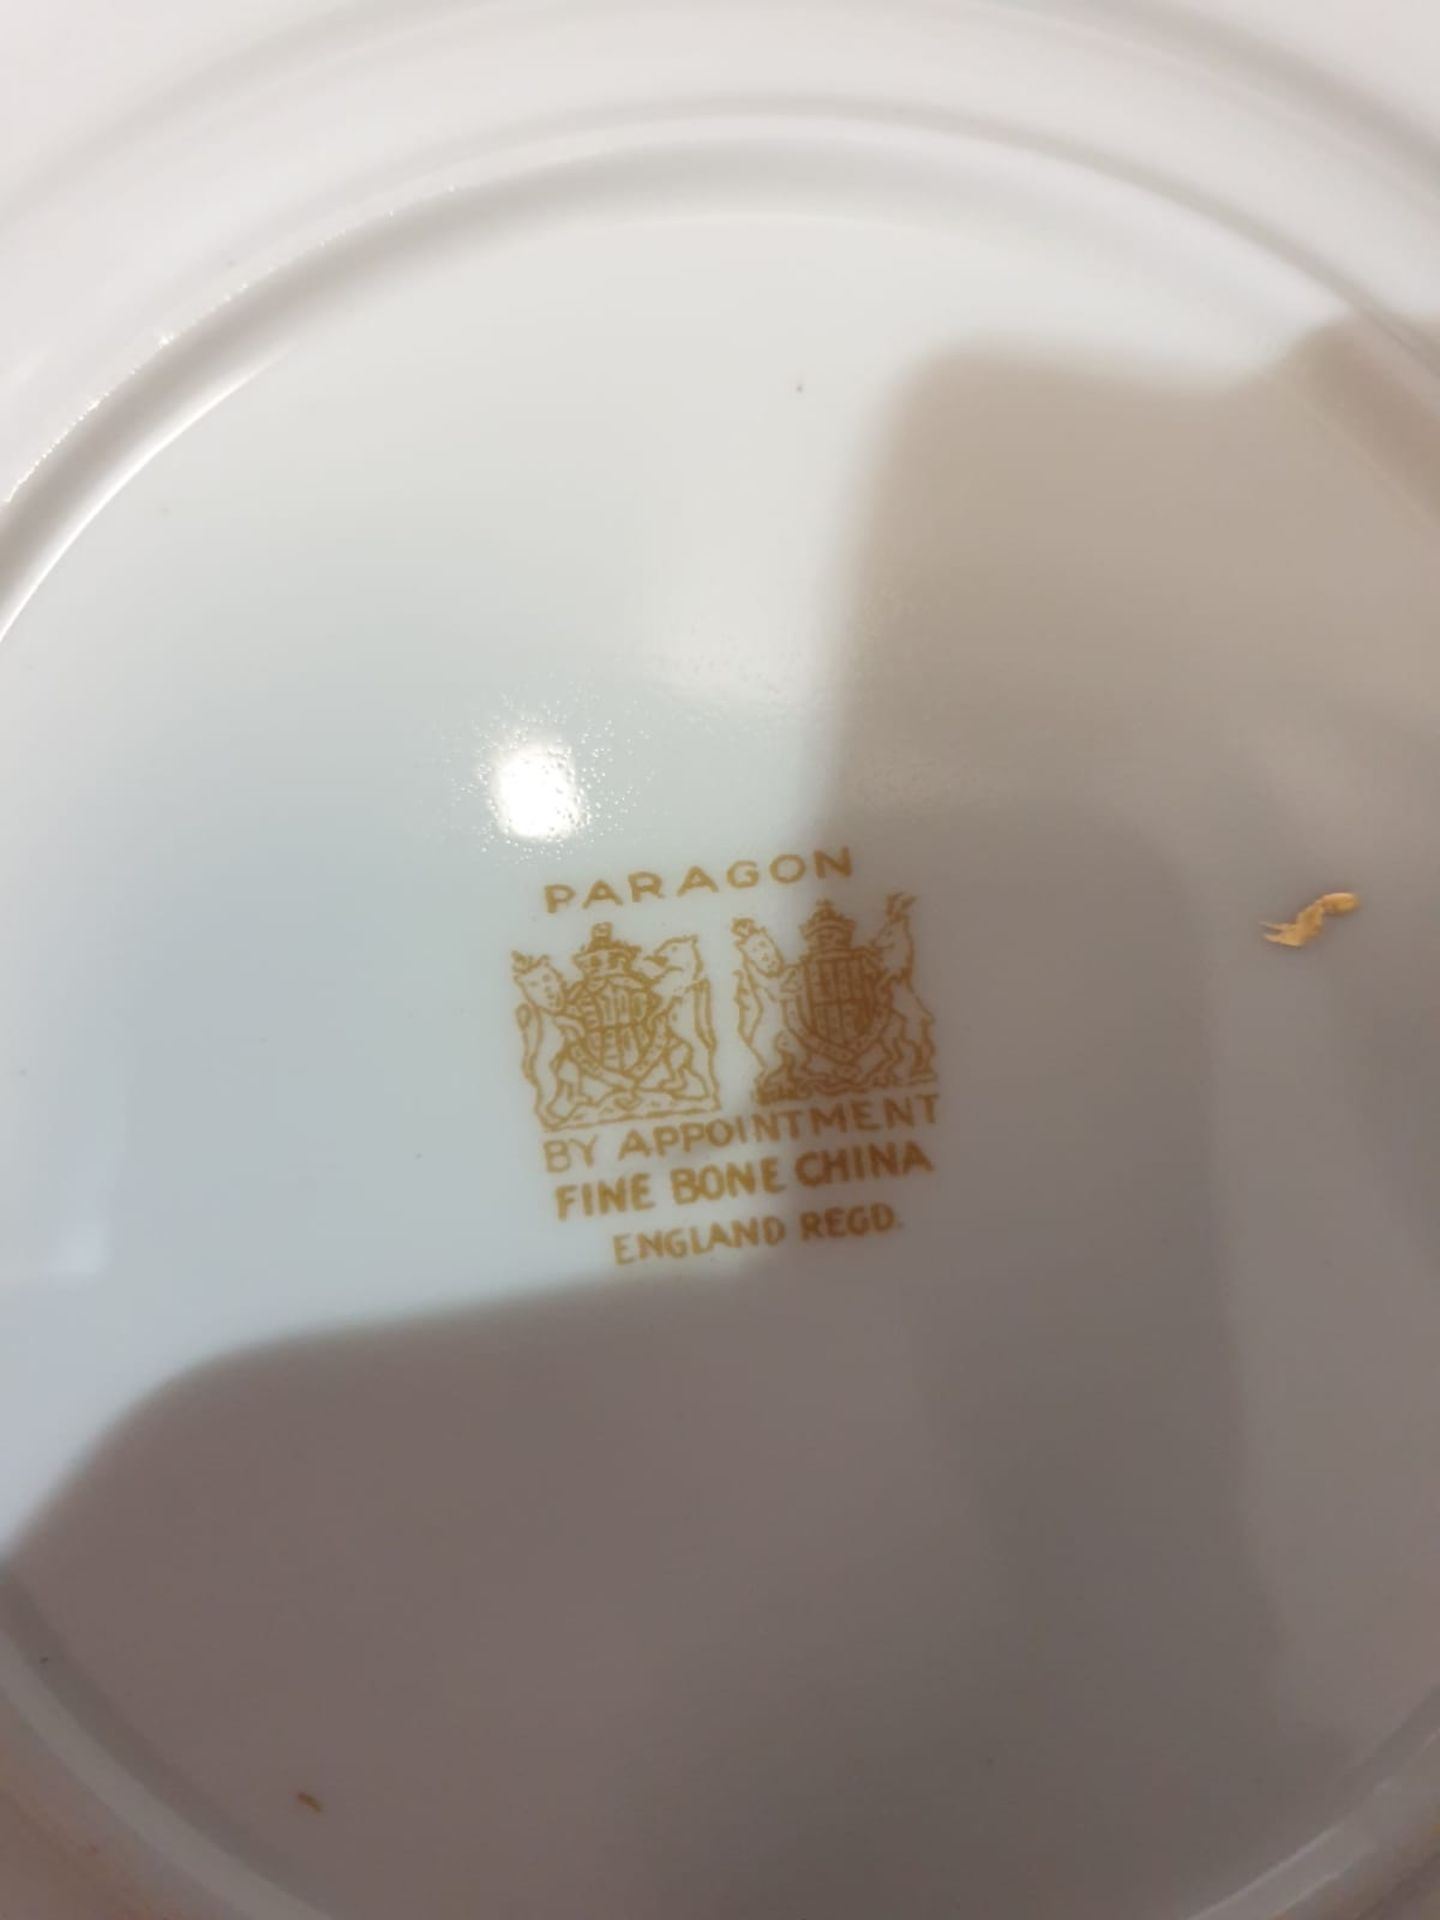 A Paragon England fine bone China partial tea service floral with gold rim comprising of 11x serving - Image 2 of 3